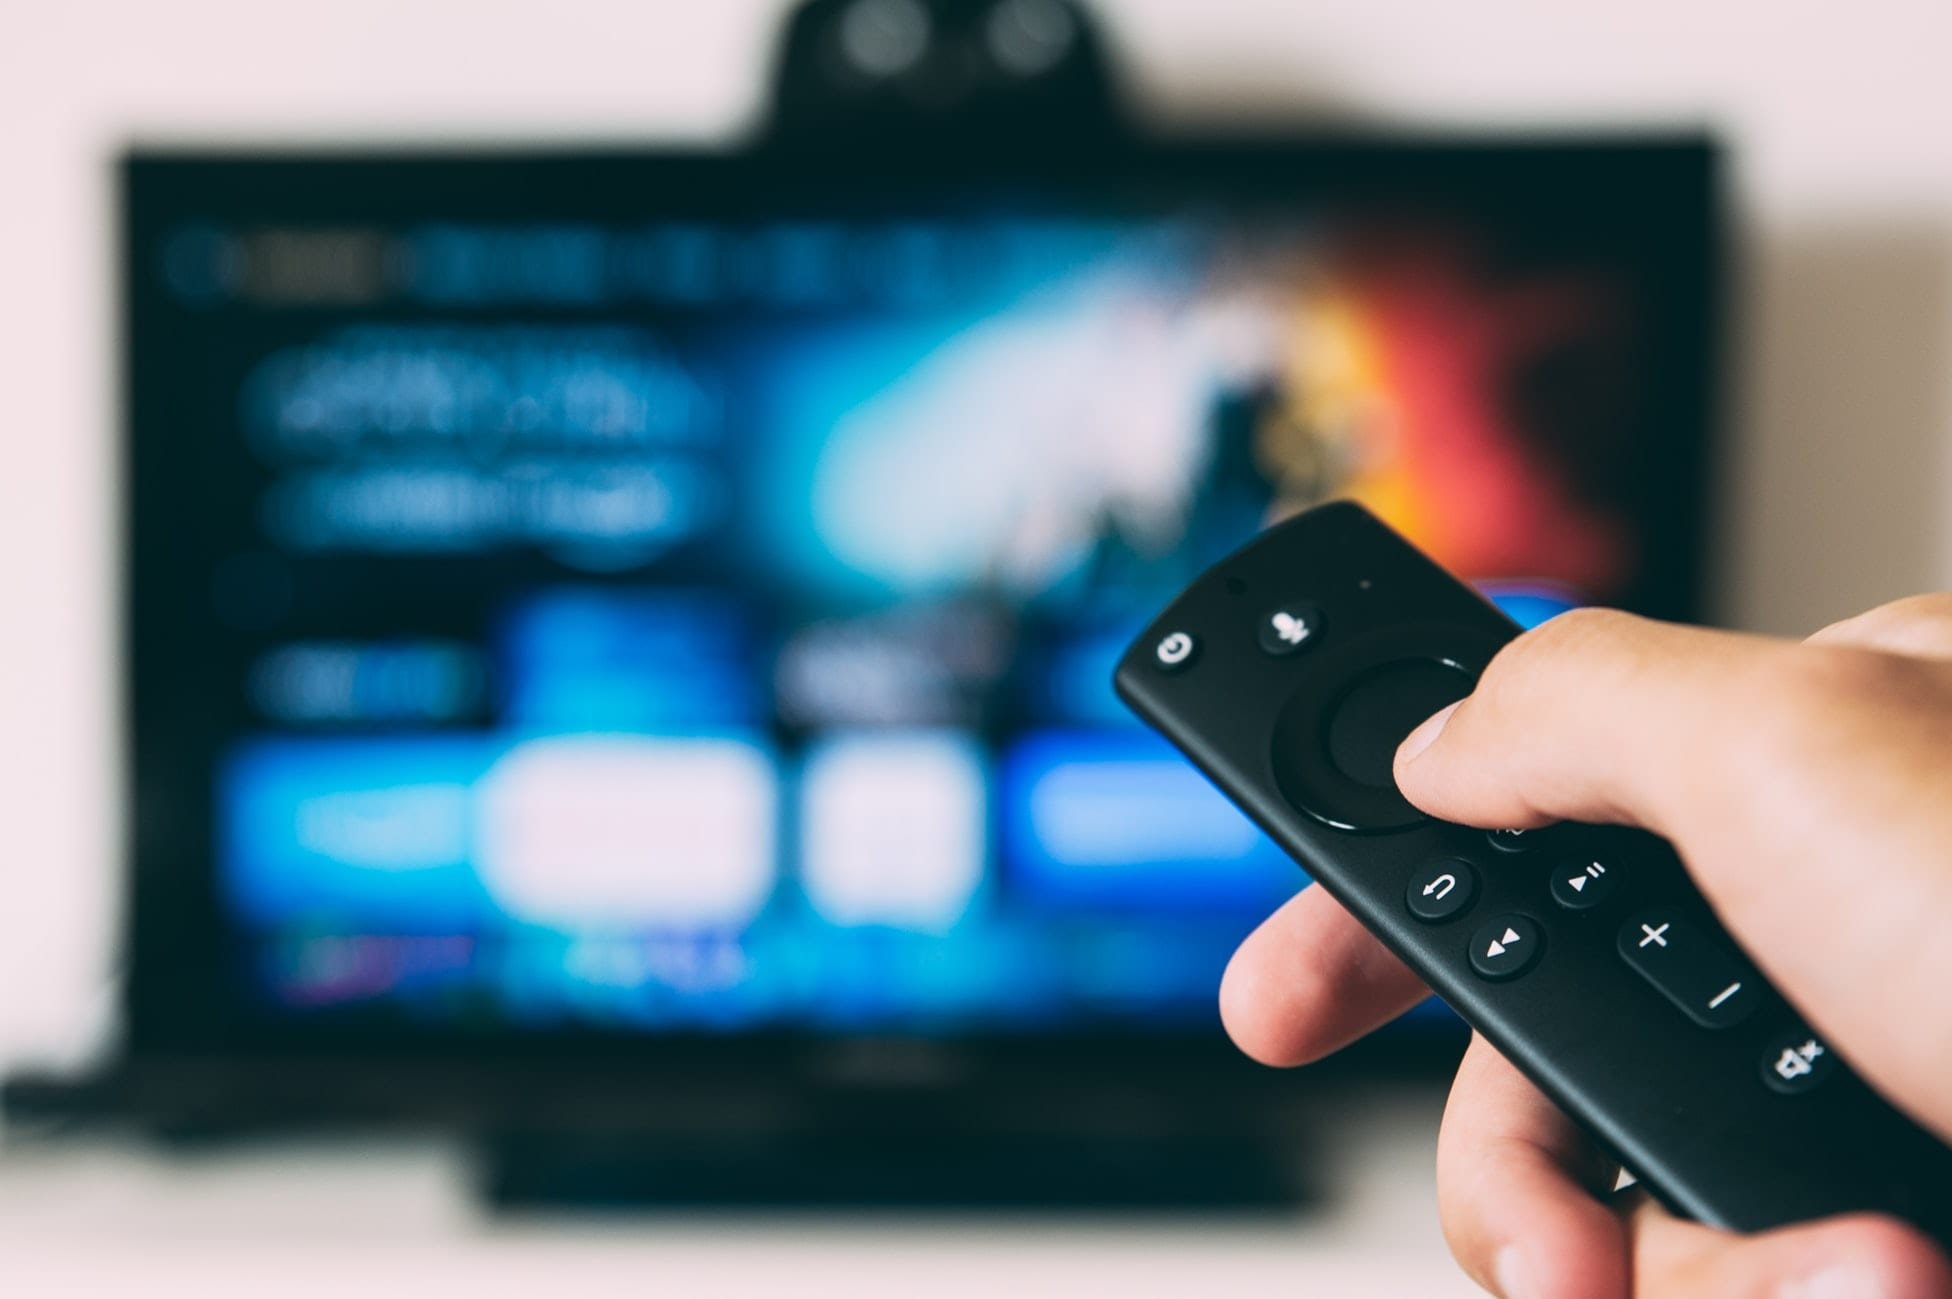 How to Trigger Amazon Fire TV Stick Remotely